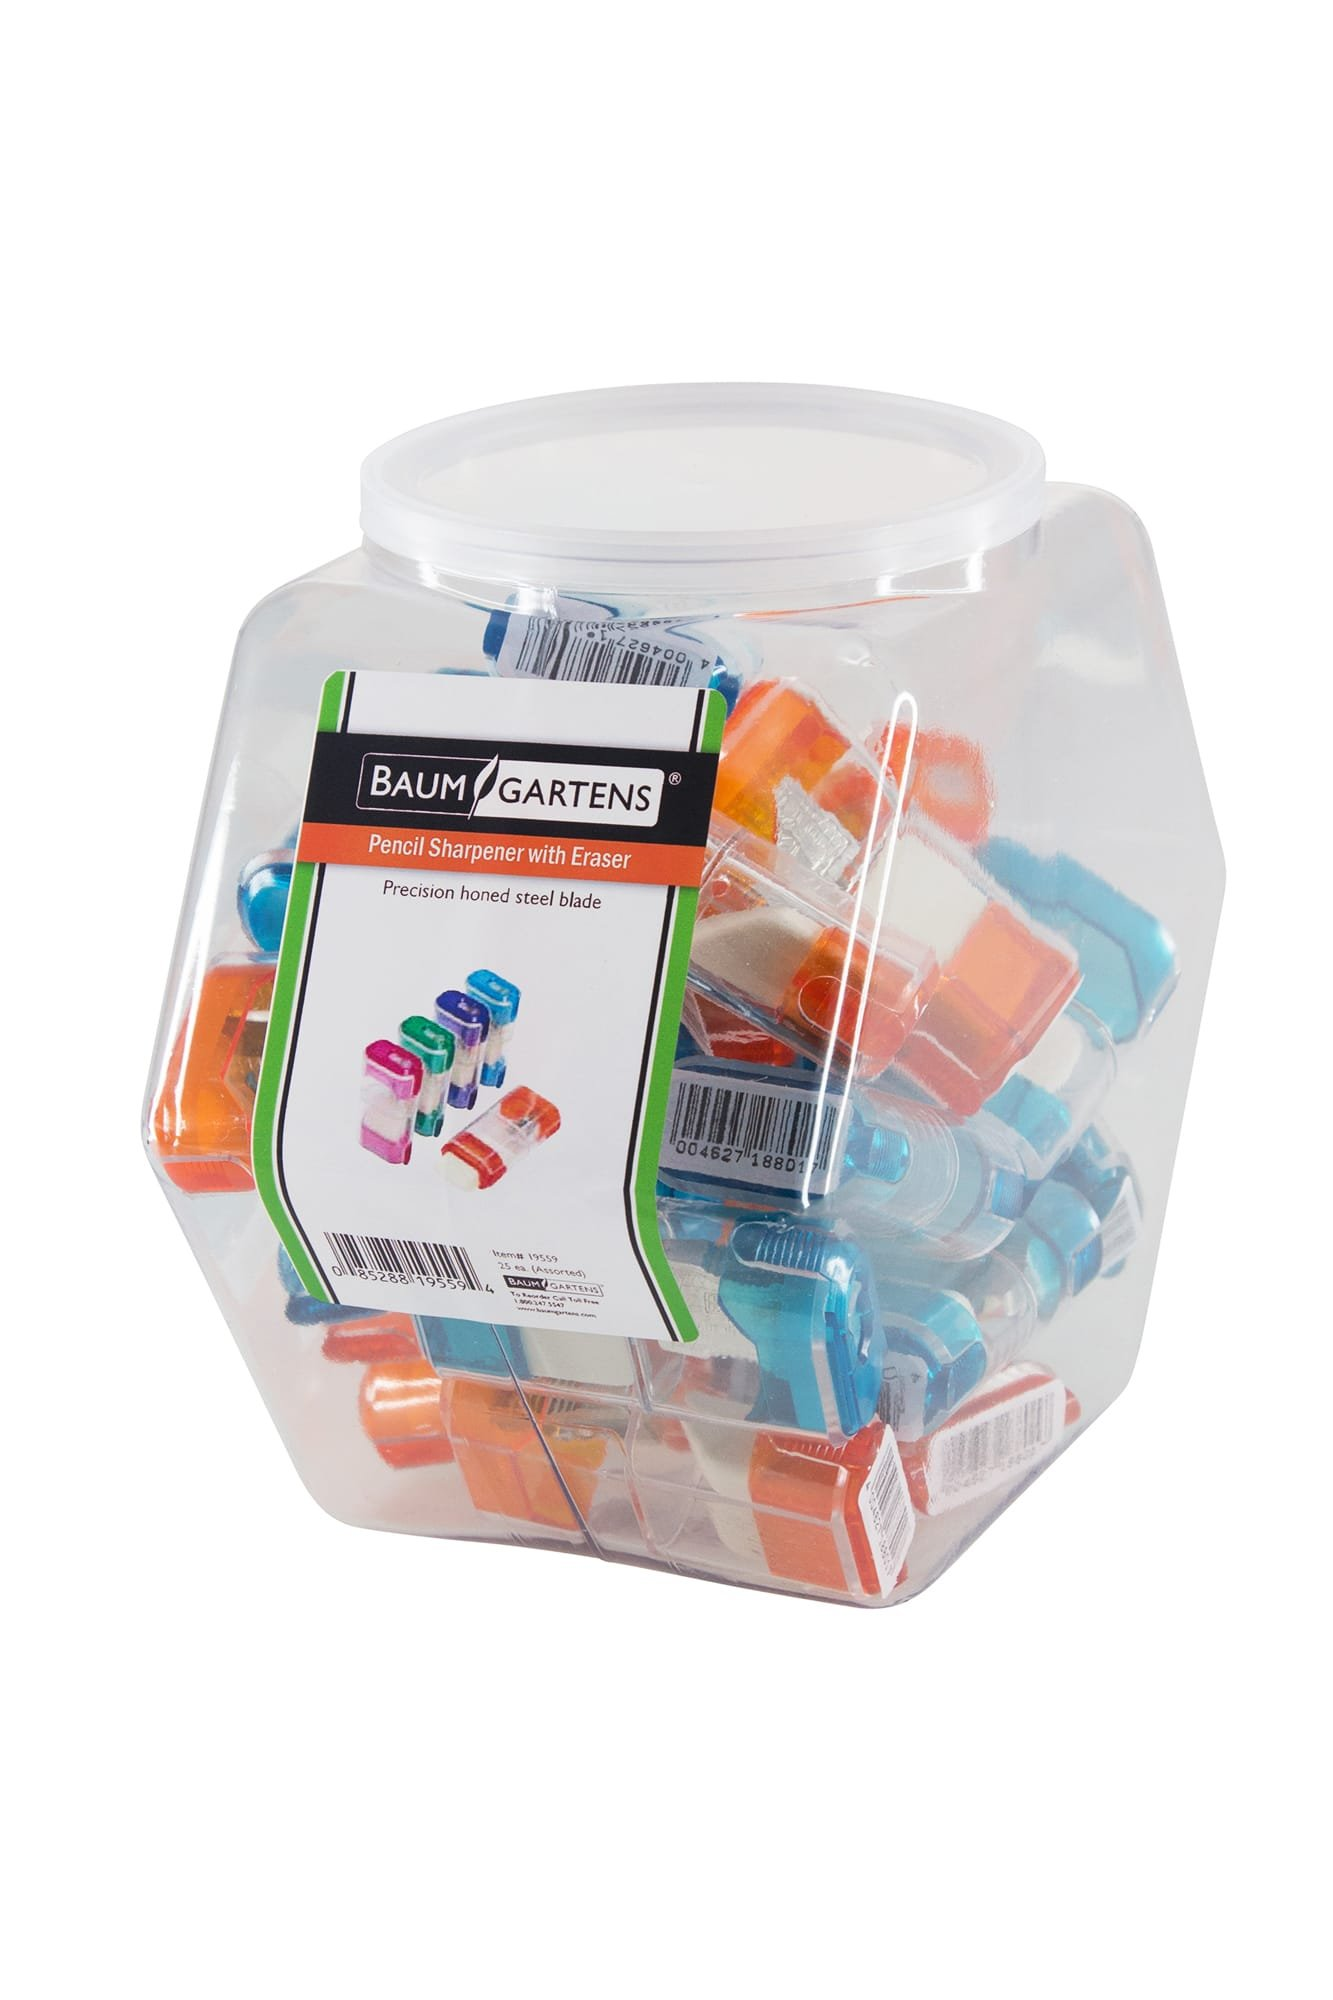 Baumgartens Pencil Sharpeners Trap Door with Eraser Single Hole Hexagonal Tub Display of 25 Assorted Colors (19559)